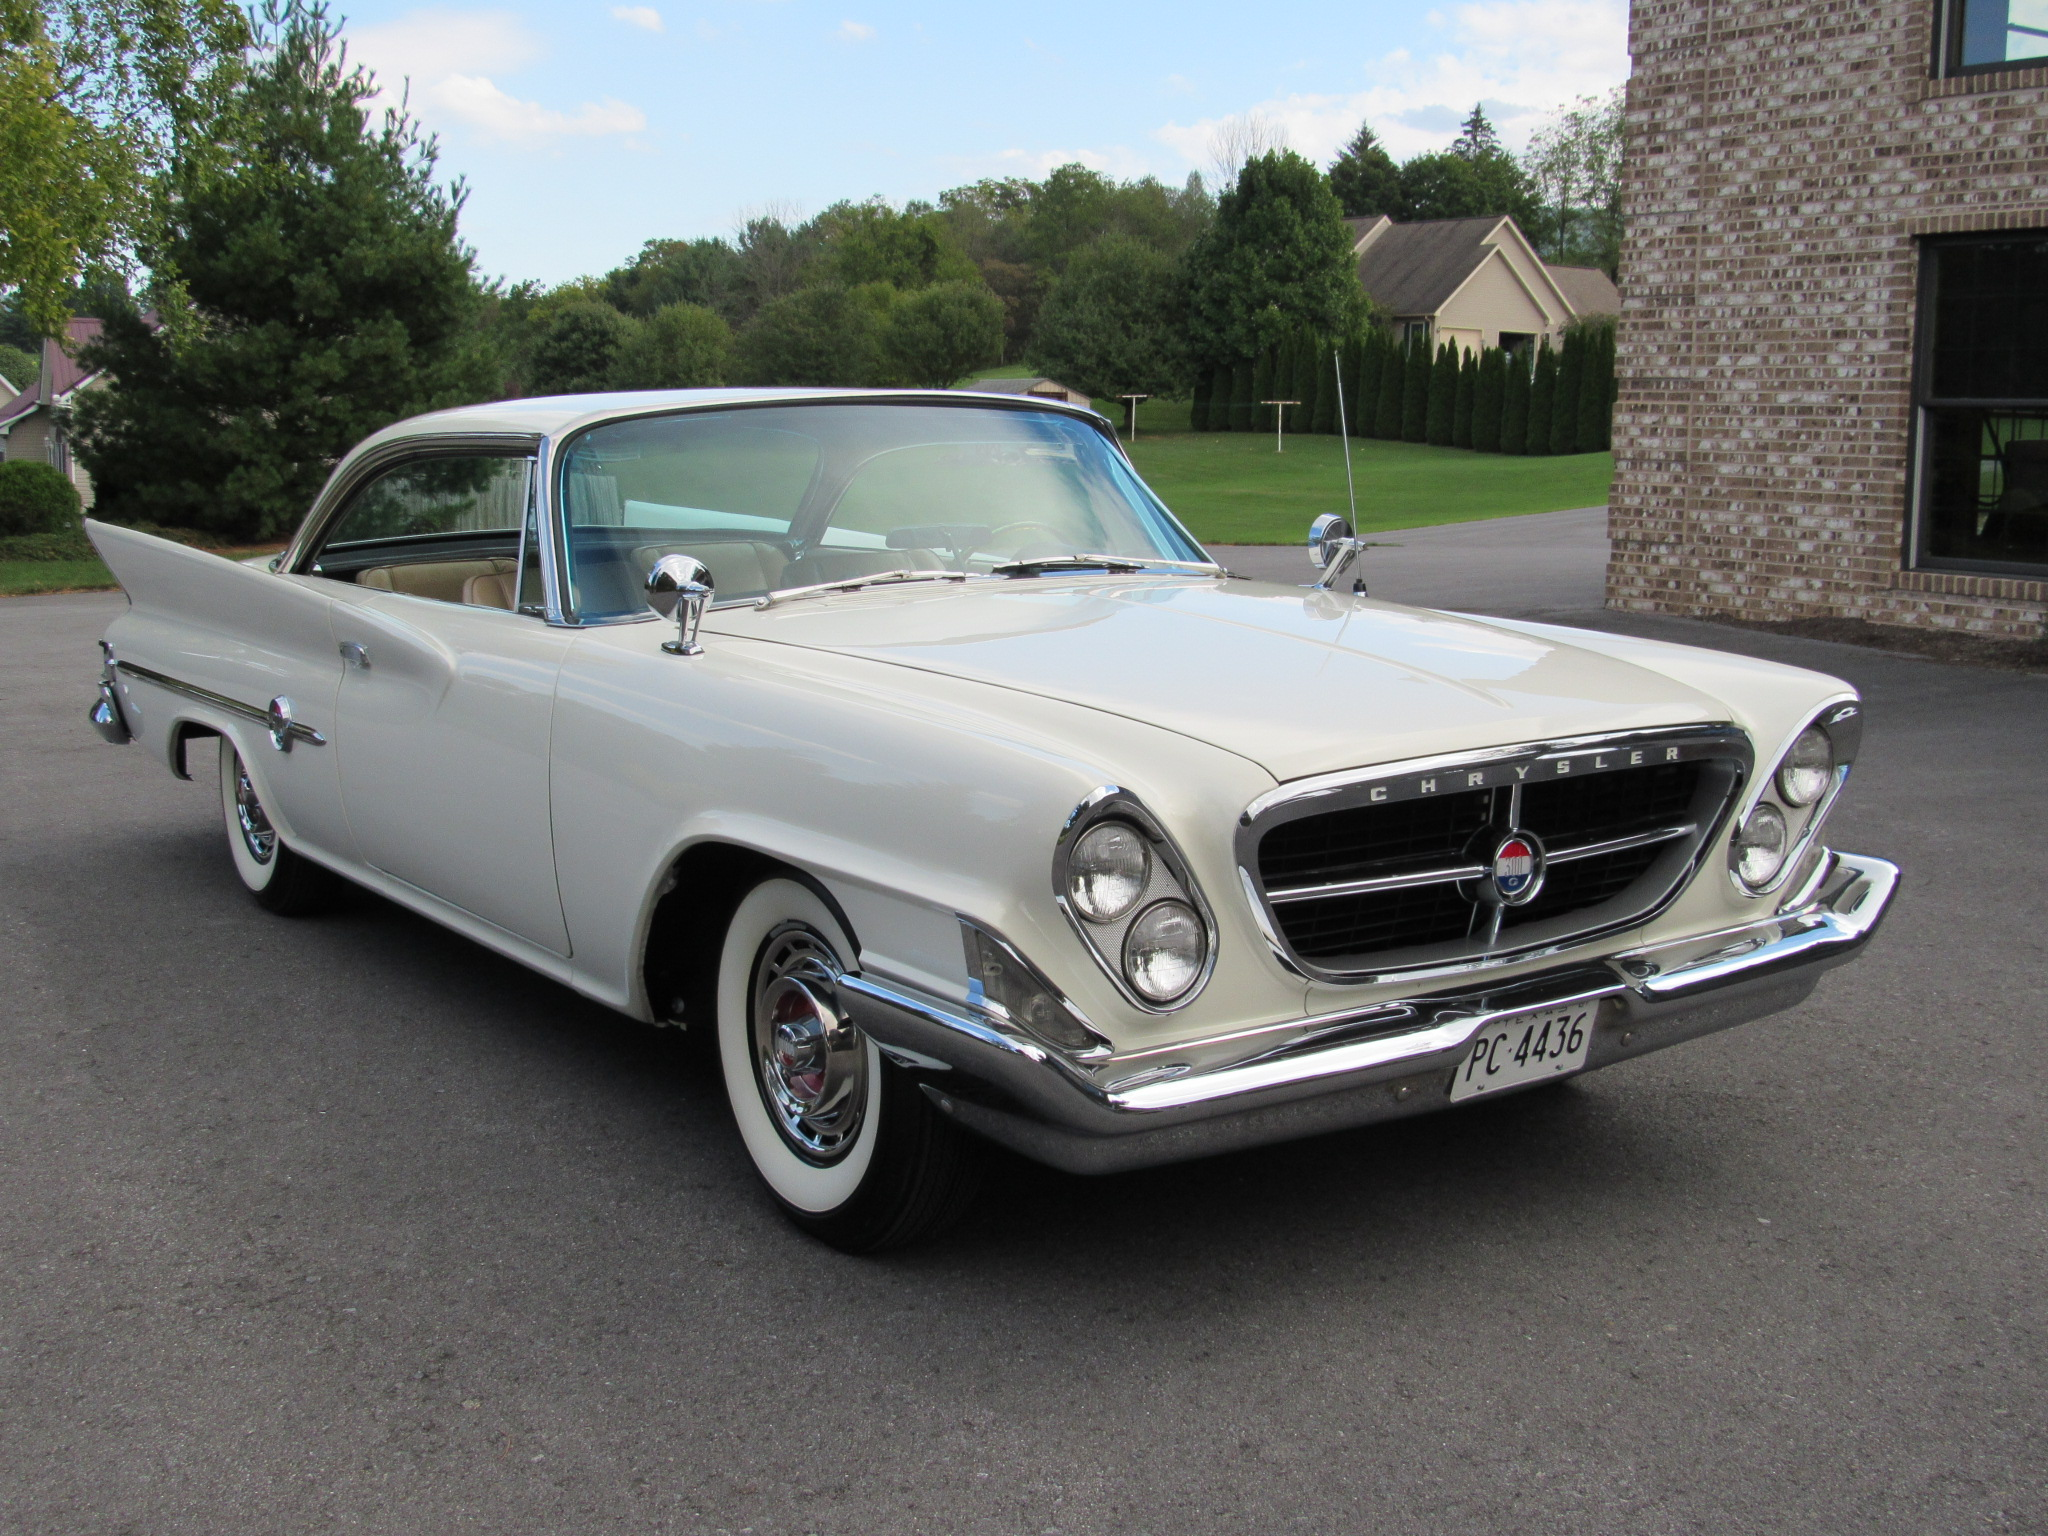 1961 Chrysler 300G - Hollywood Wheels Auction Shows